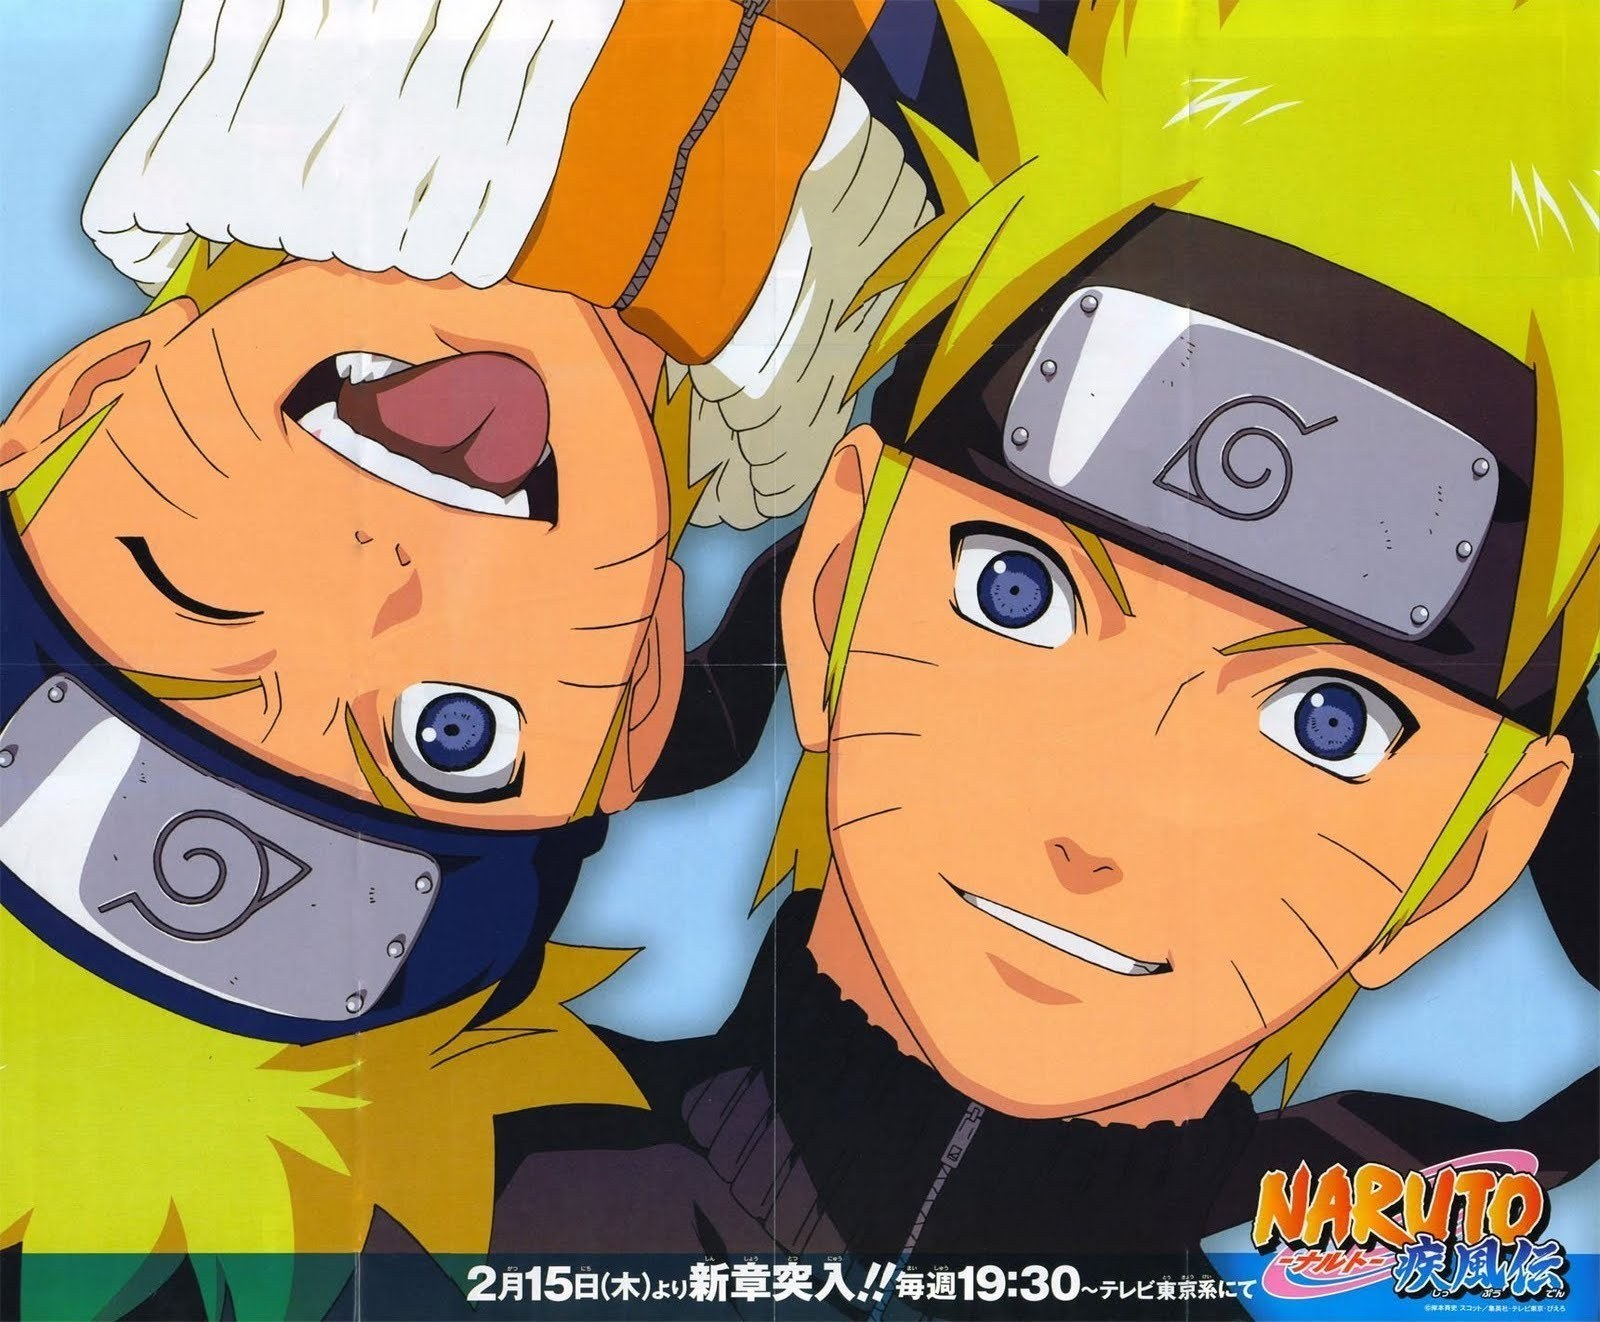 Beautiful Wallpaper Naruto Cute - 43285_1357997846070_full  Pic_375741.jpg